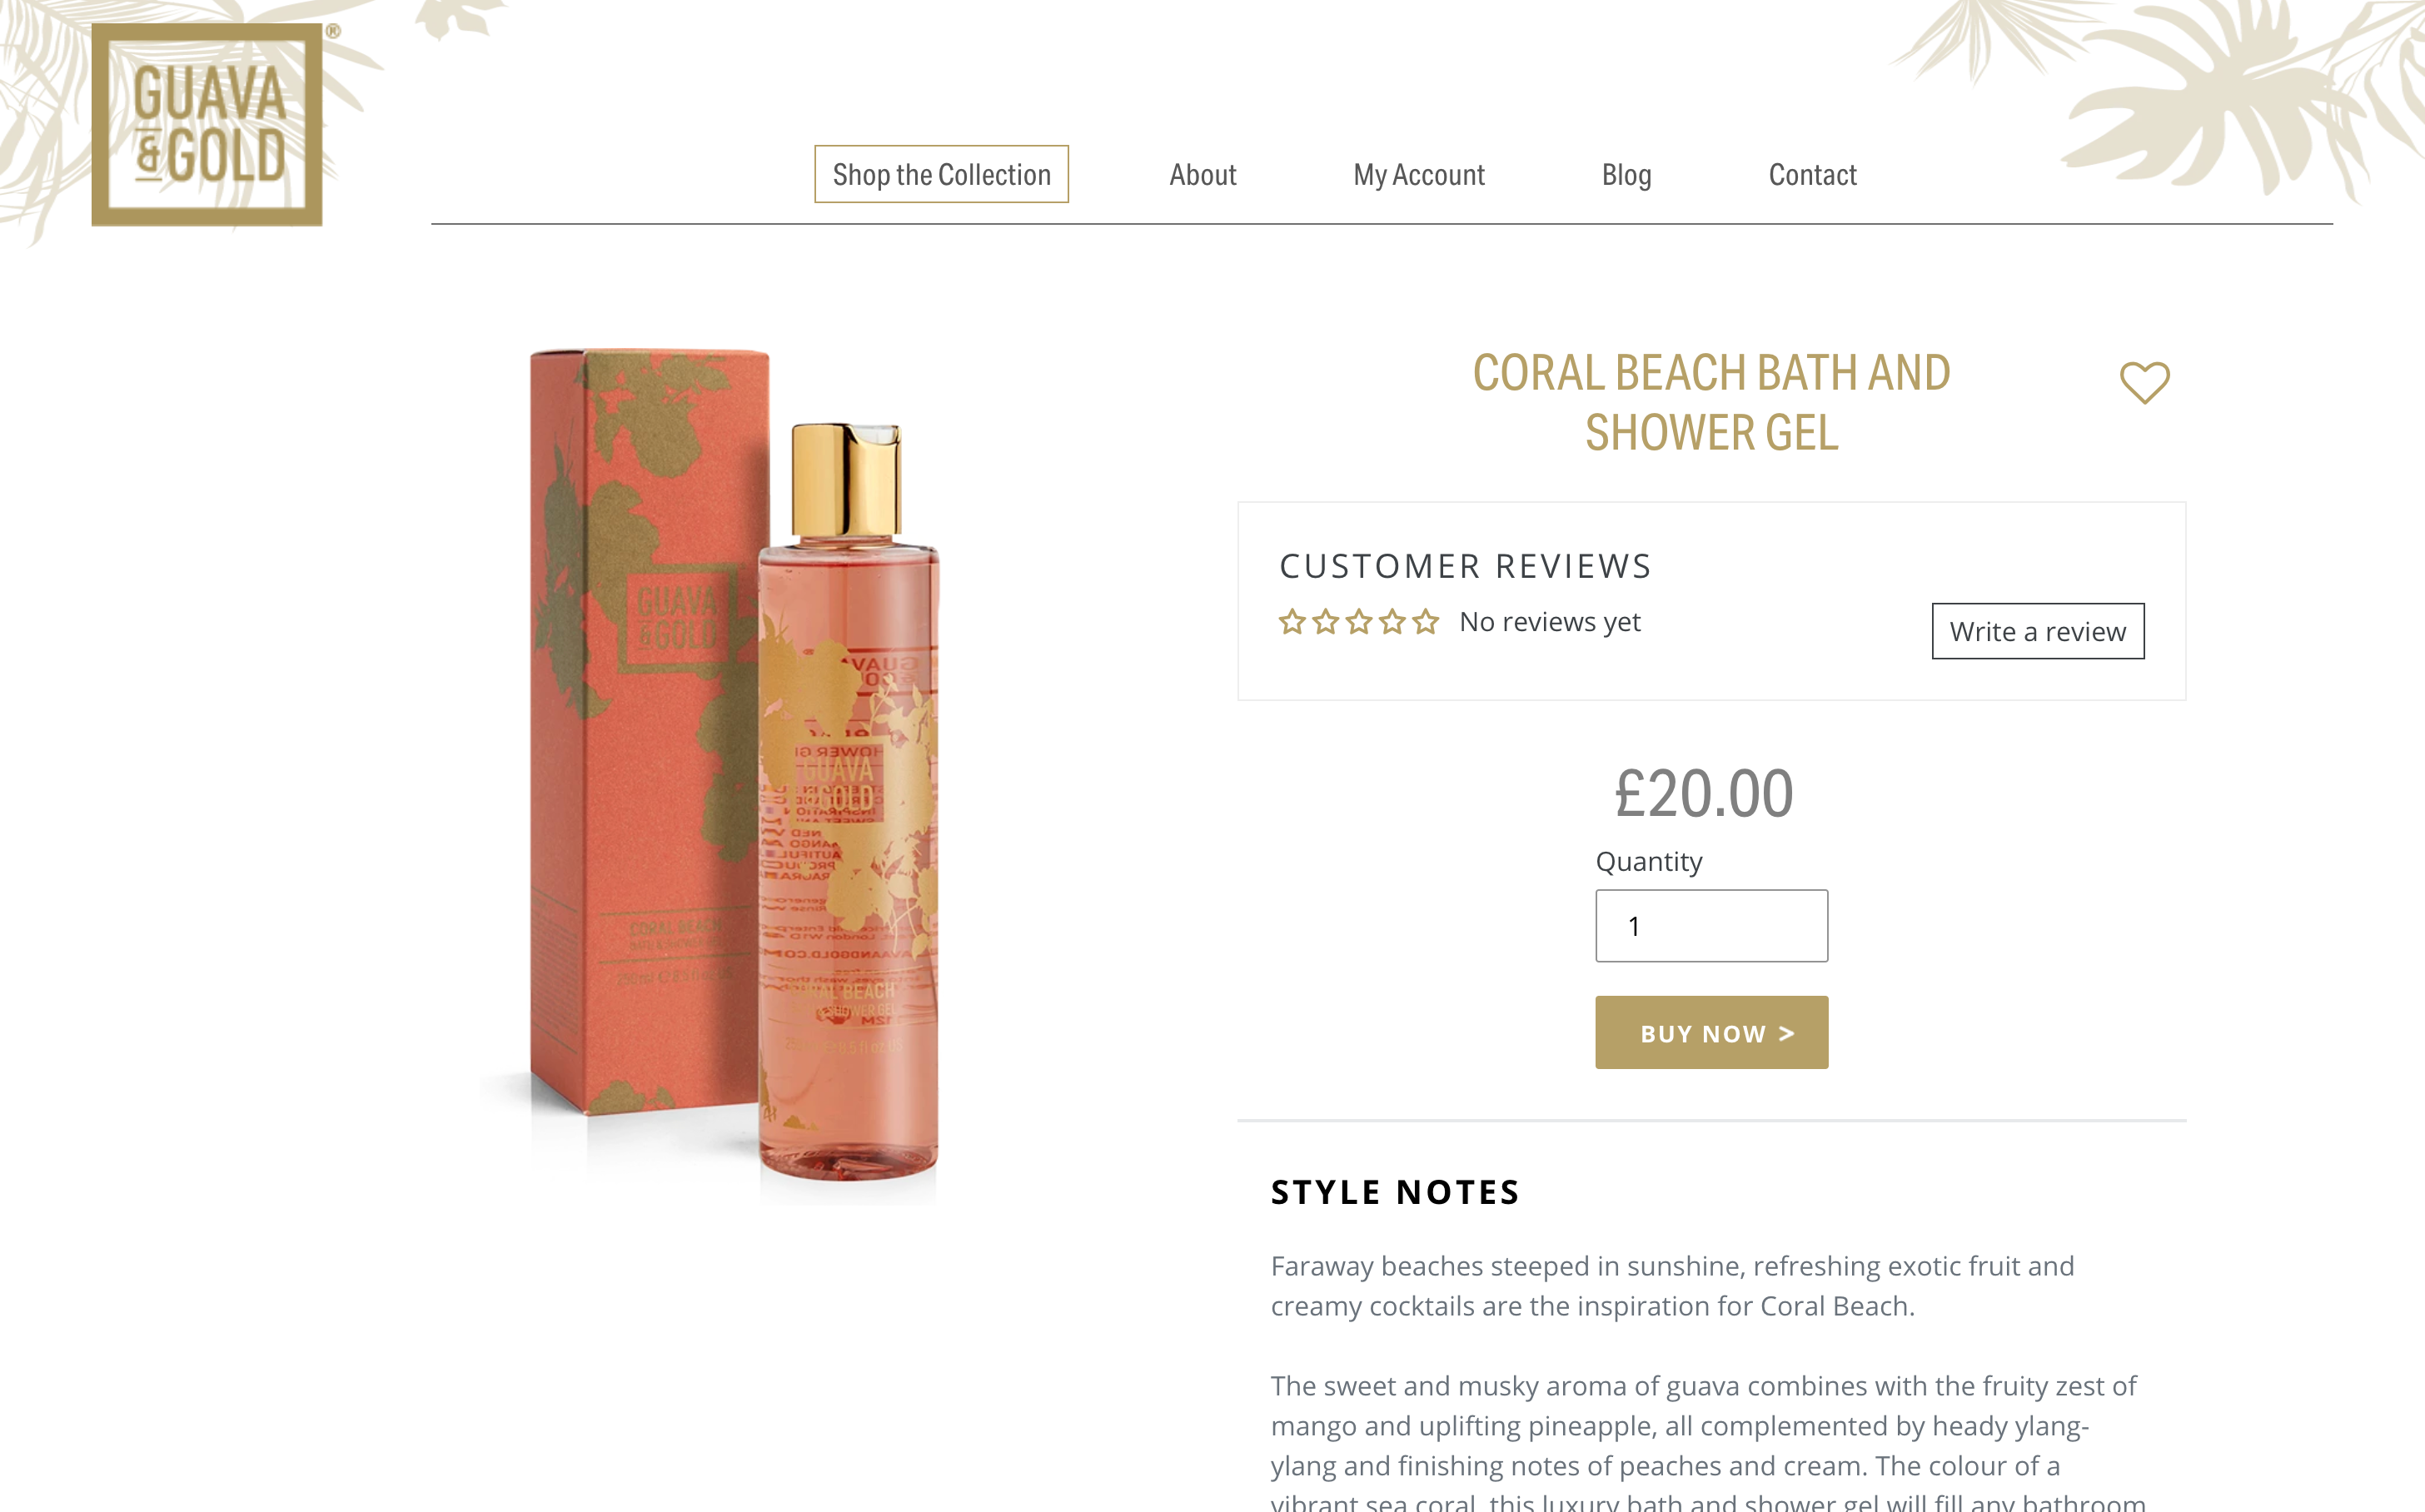 Guava & Gold Shopify website